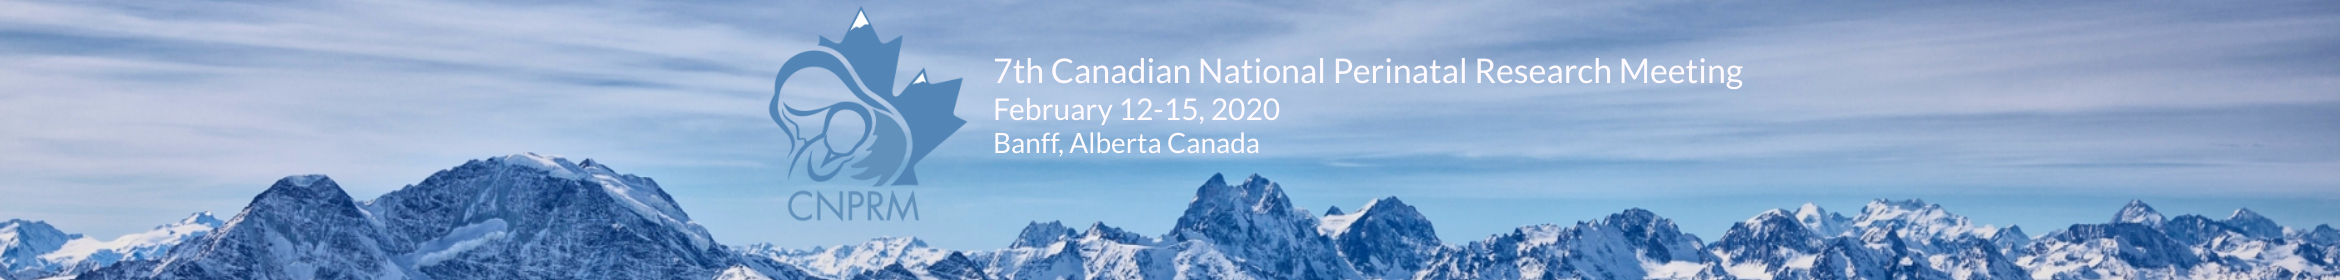 2020 7th Canadian National Perinatal Research Meet Main banner